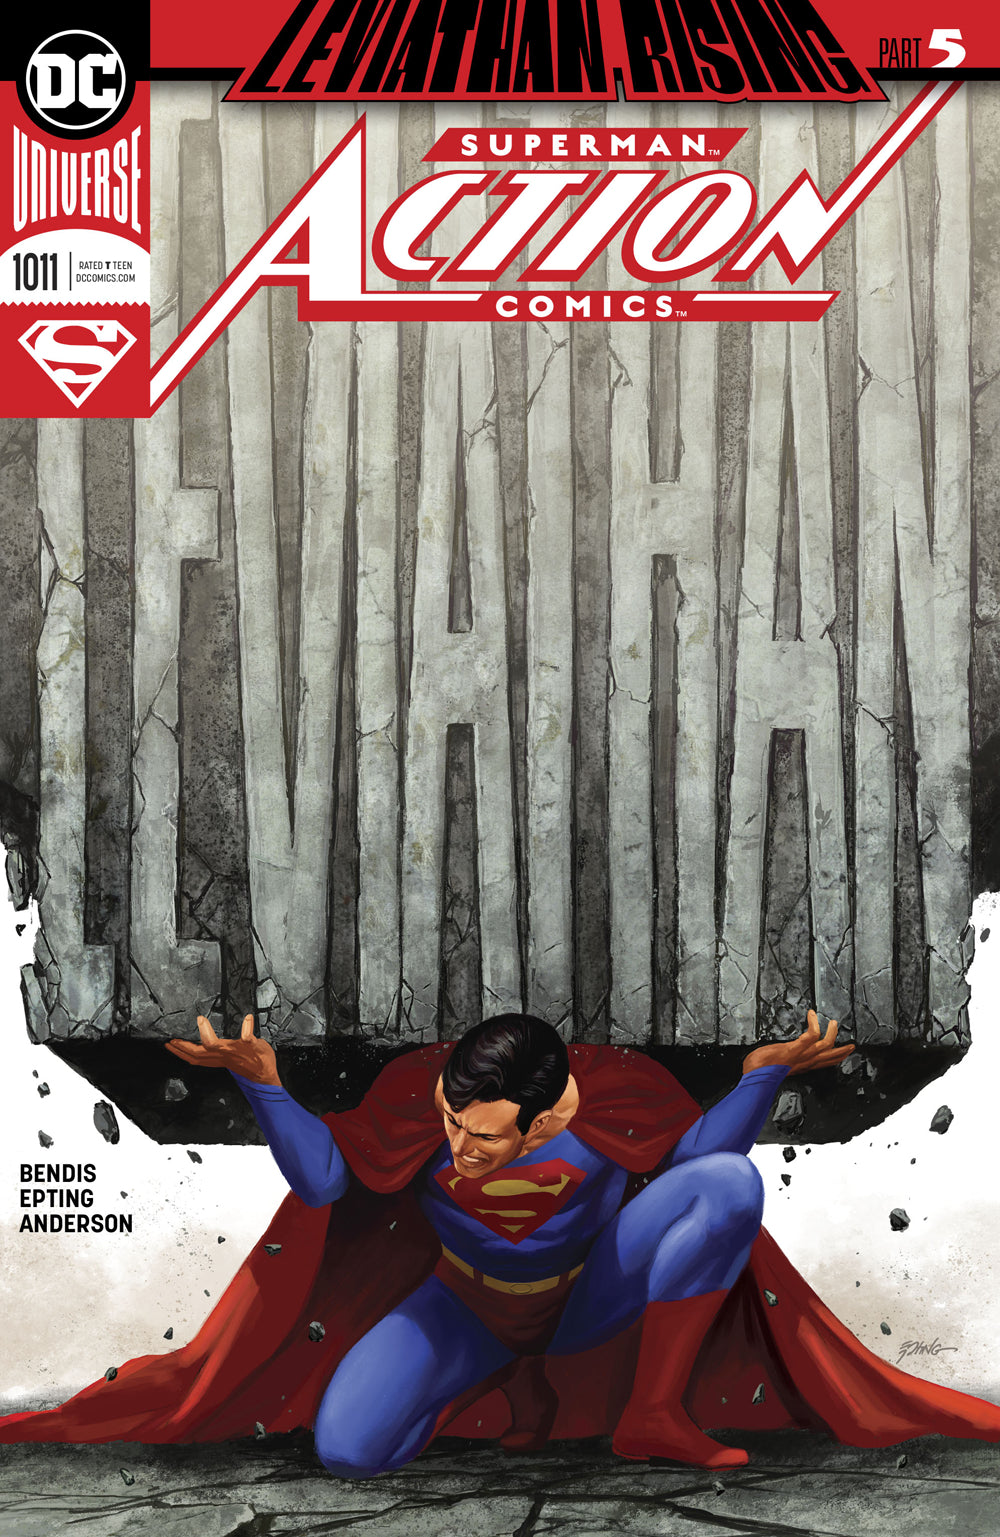 ACTION COMICS #1011 | Game Master's Emporium (The New GME)